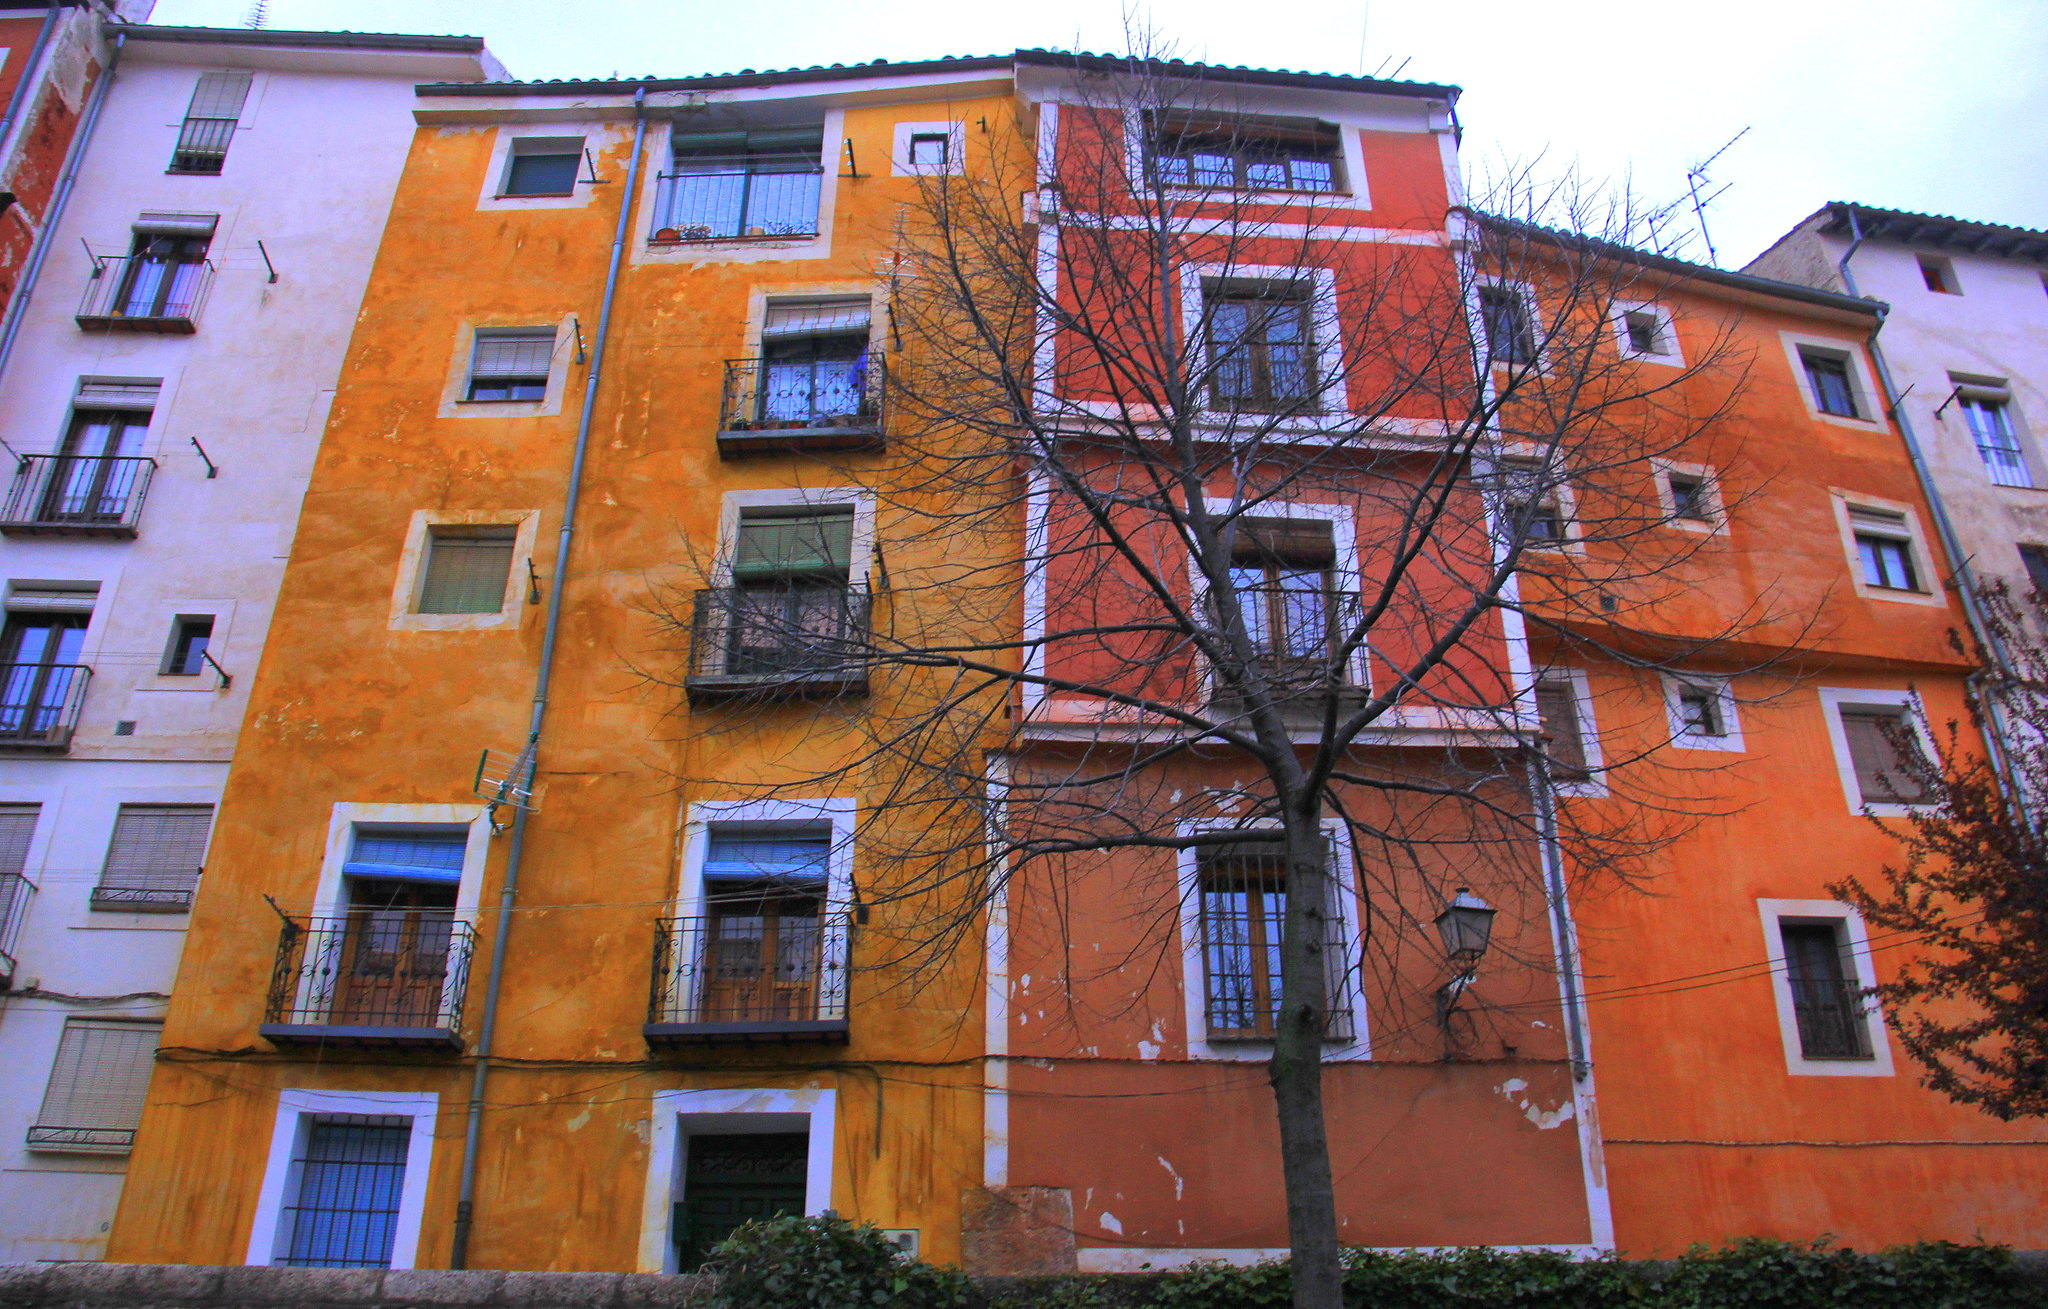 Visit Cuenca for modern abstract art, hanging houses and gorgeous natural location